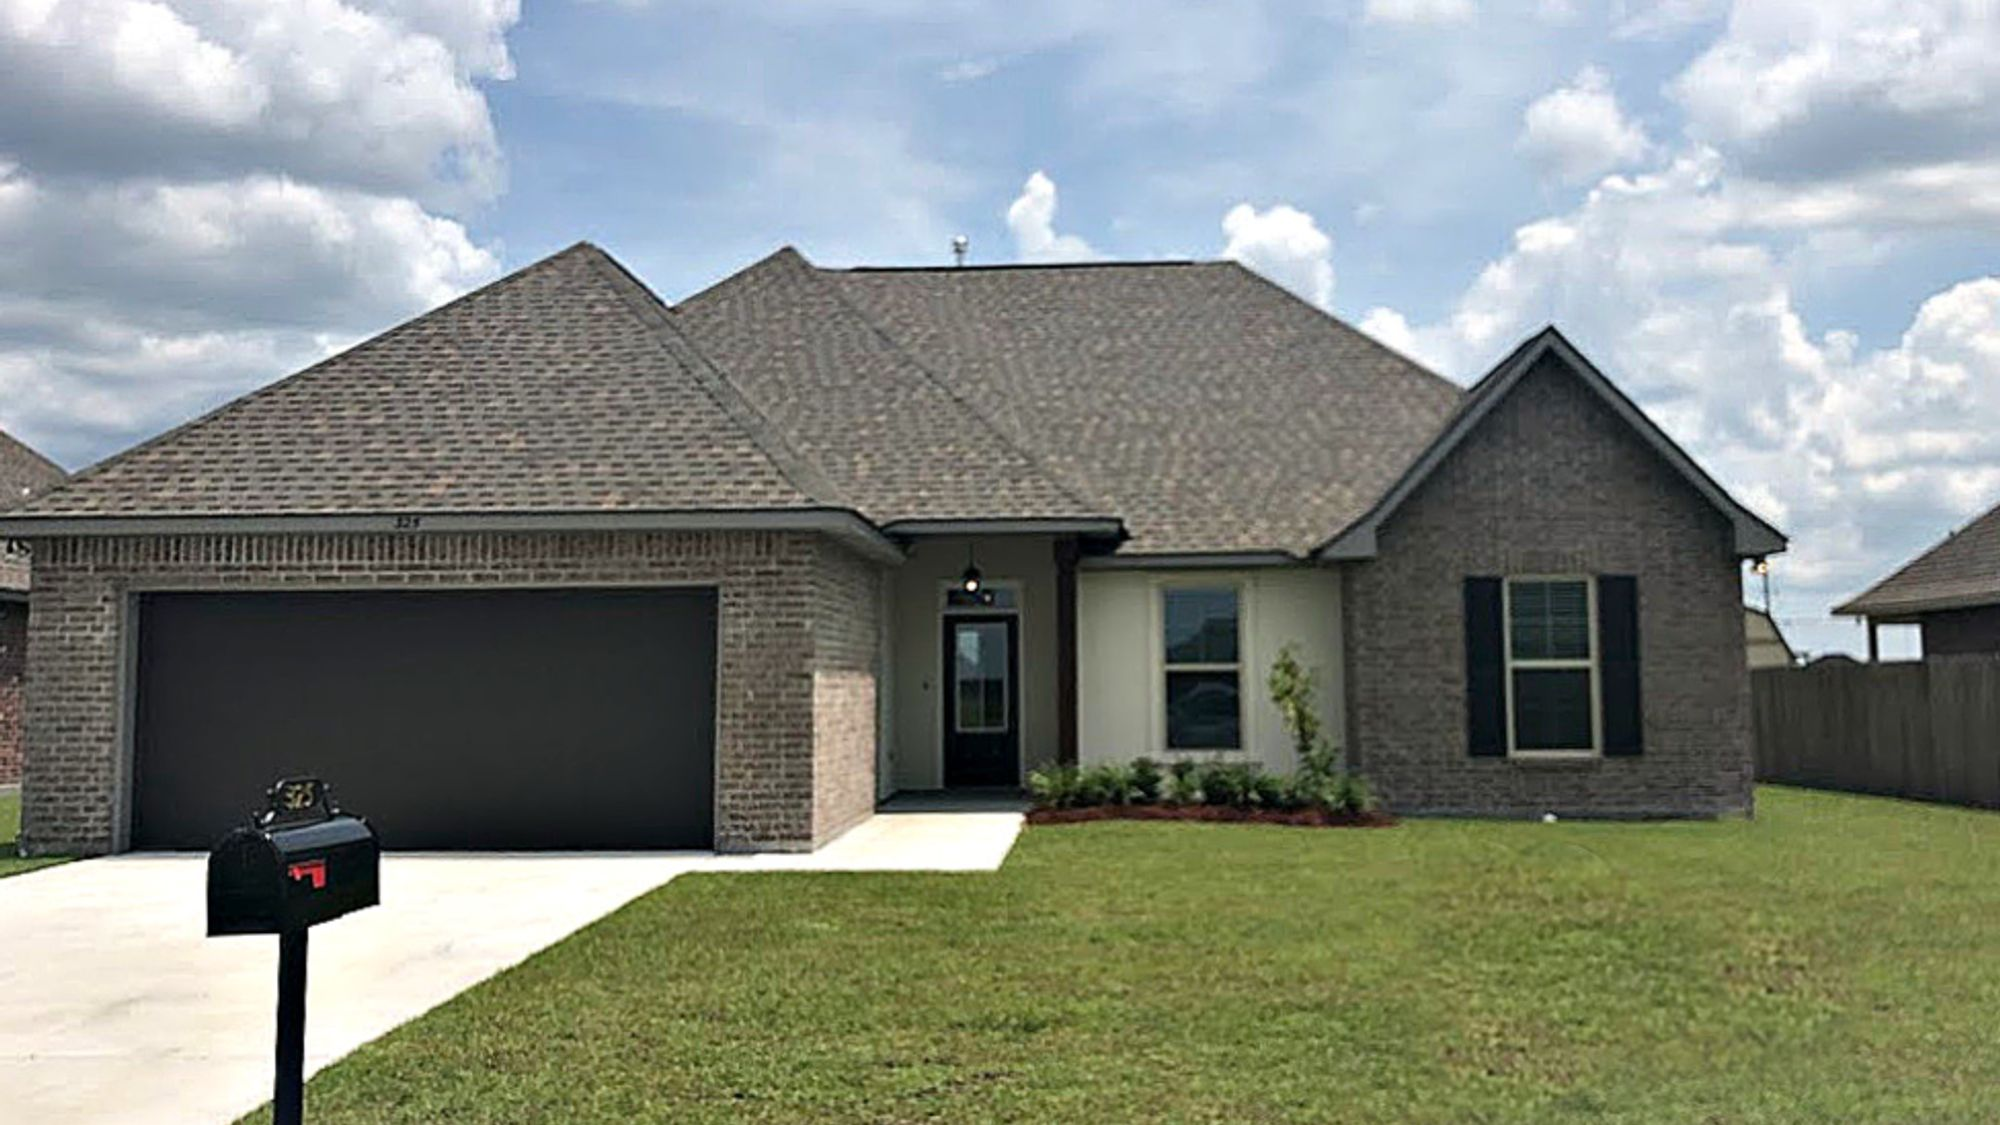 Front View - King George Estates Community - DSLD Homes Thibodaux